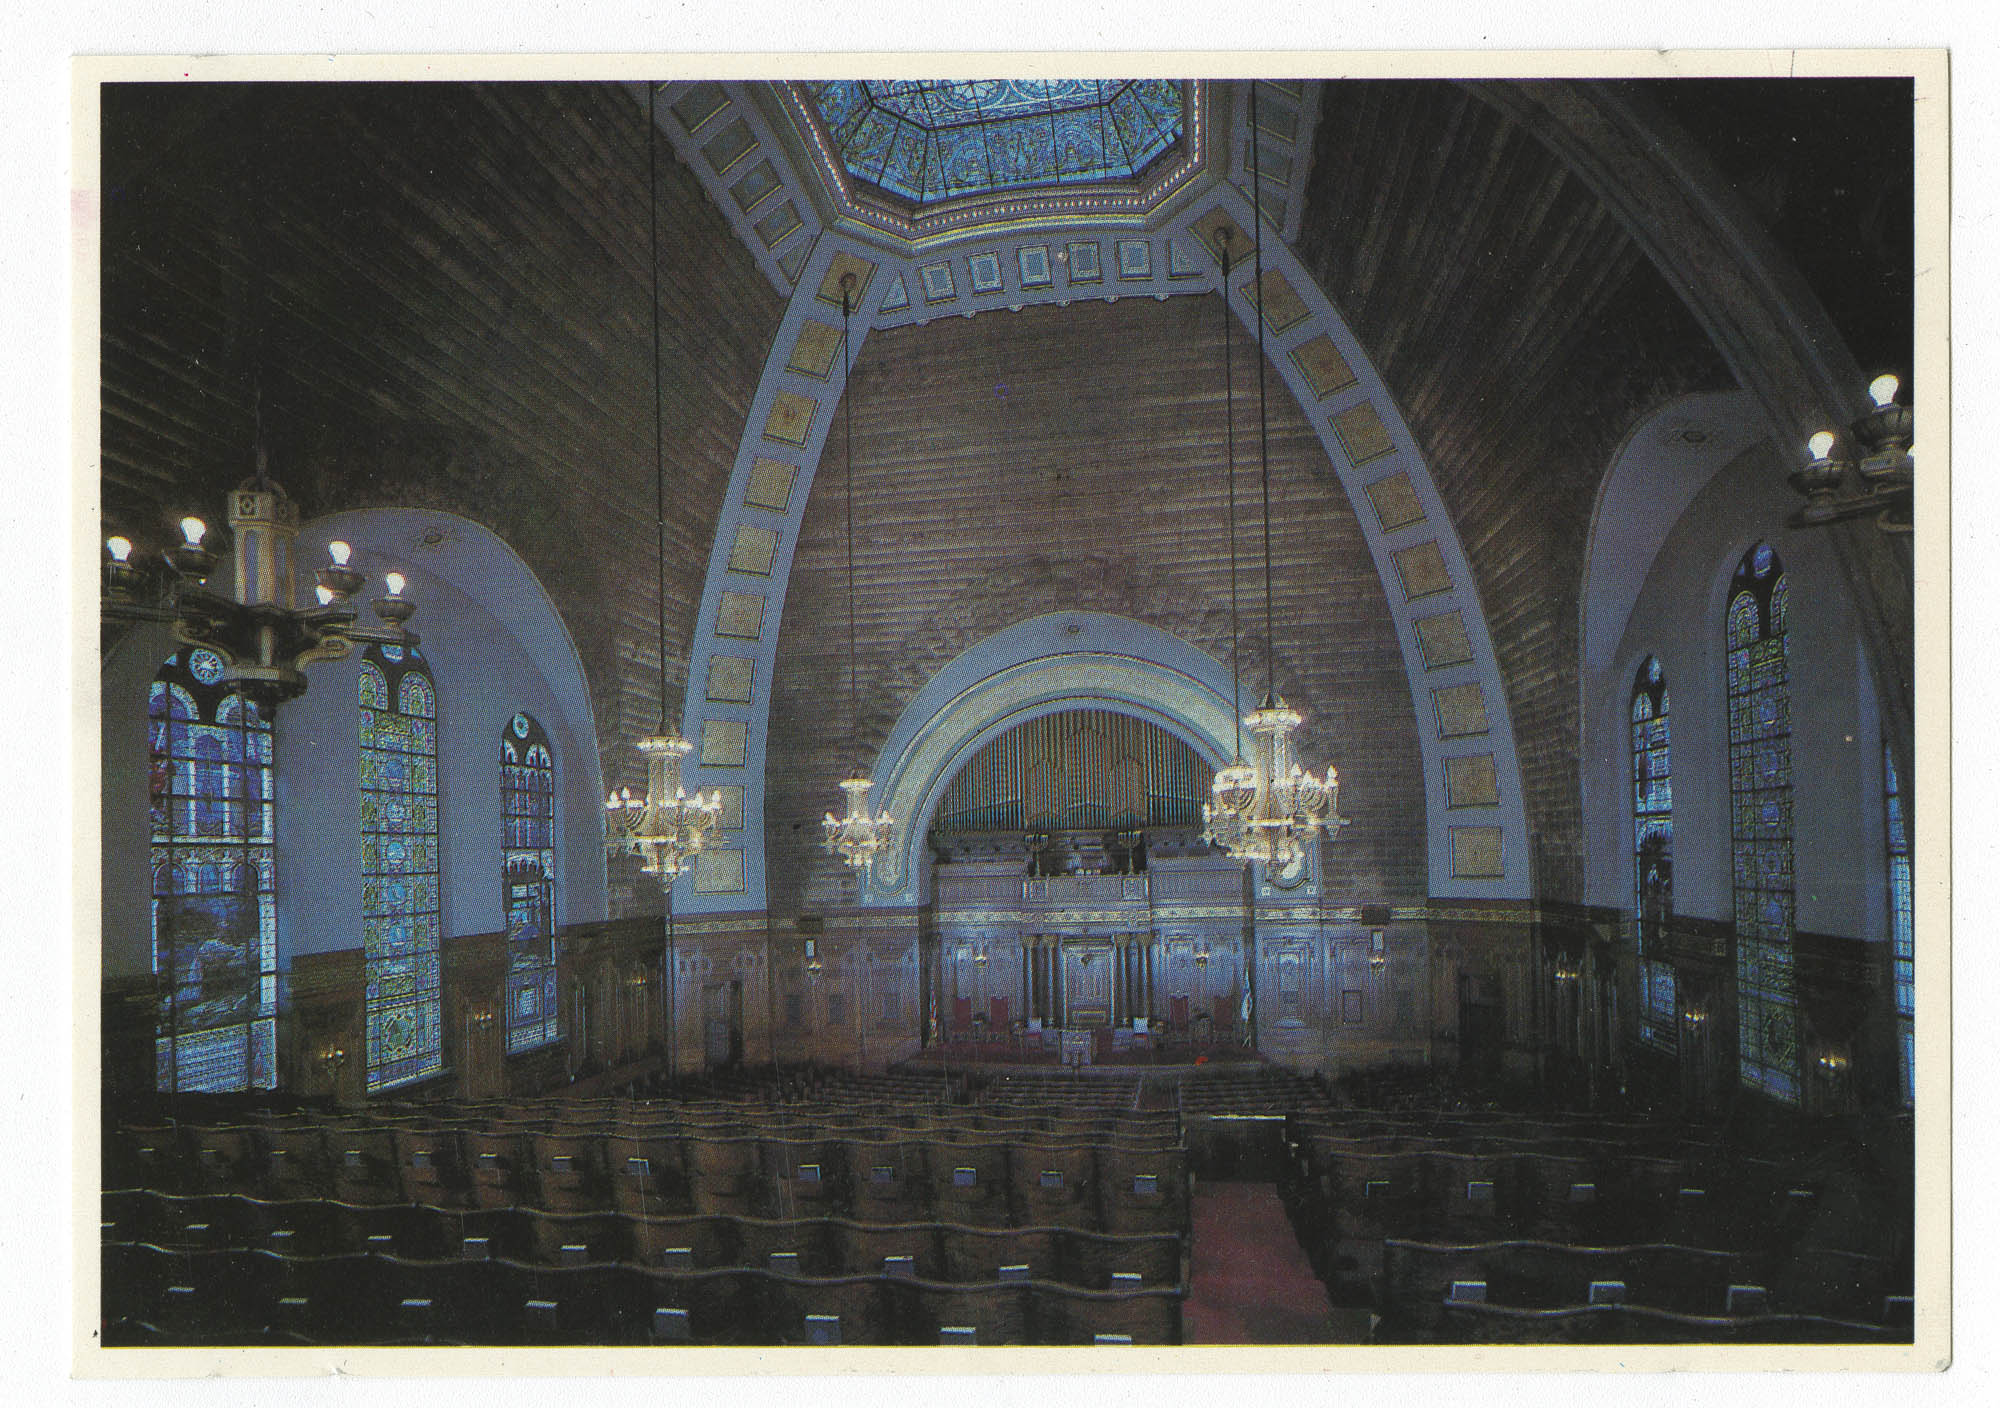 Rodef Shalom Temple, Pittsburgh, Pennsylvania